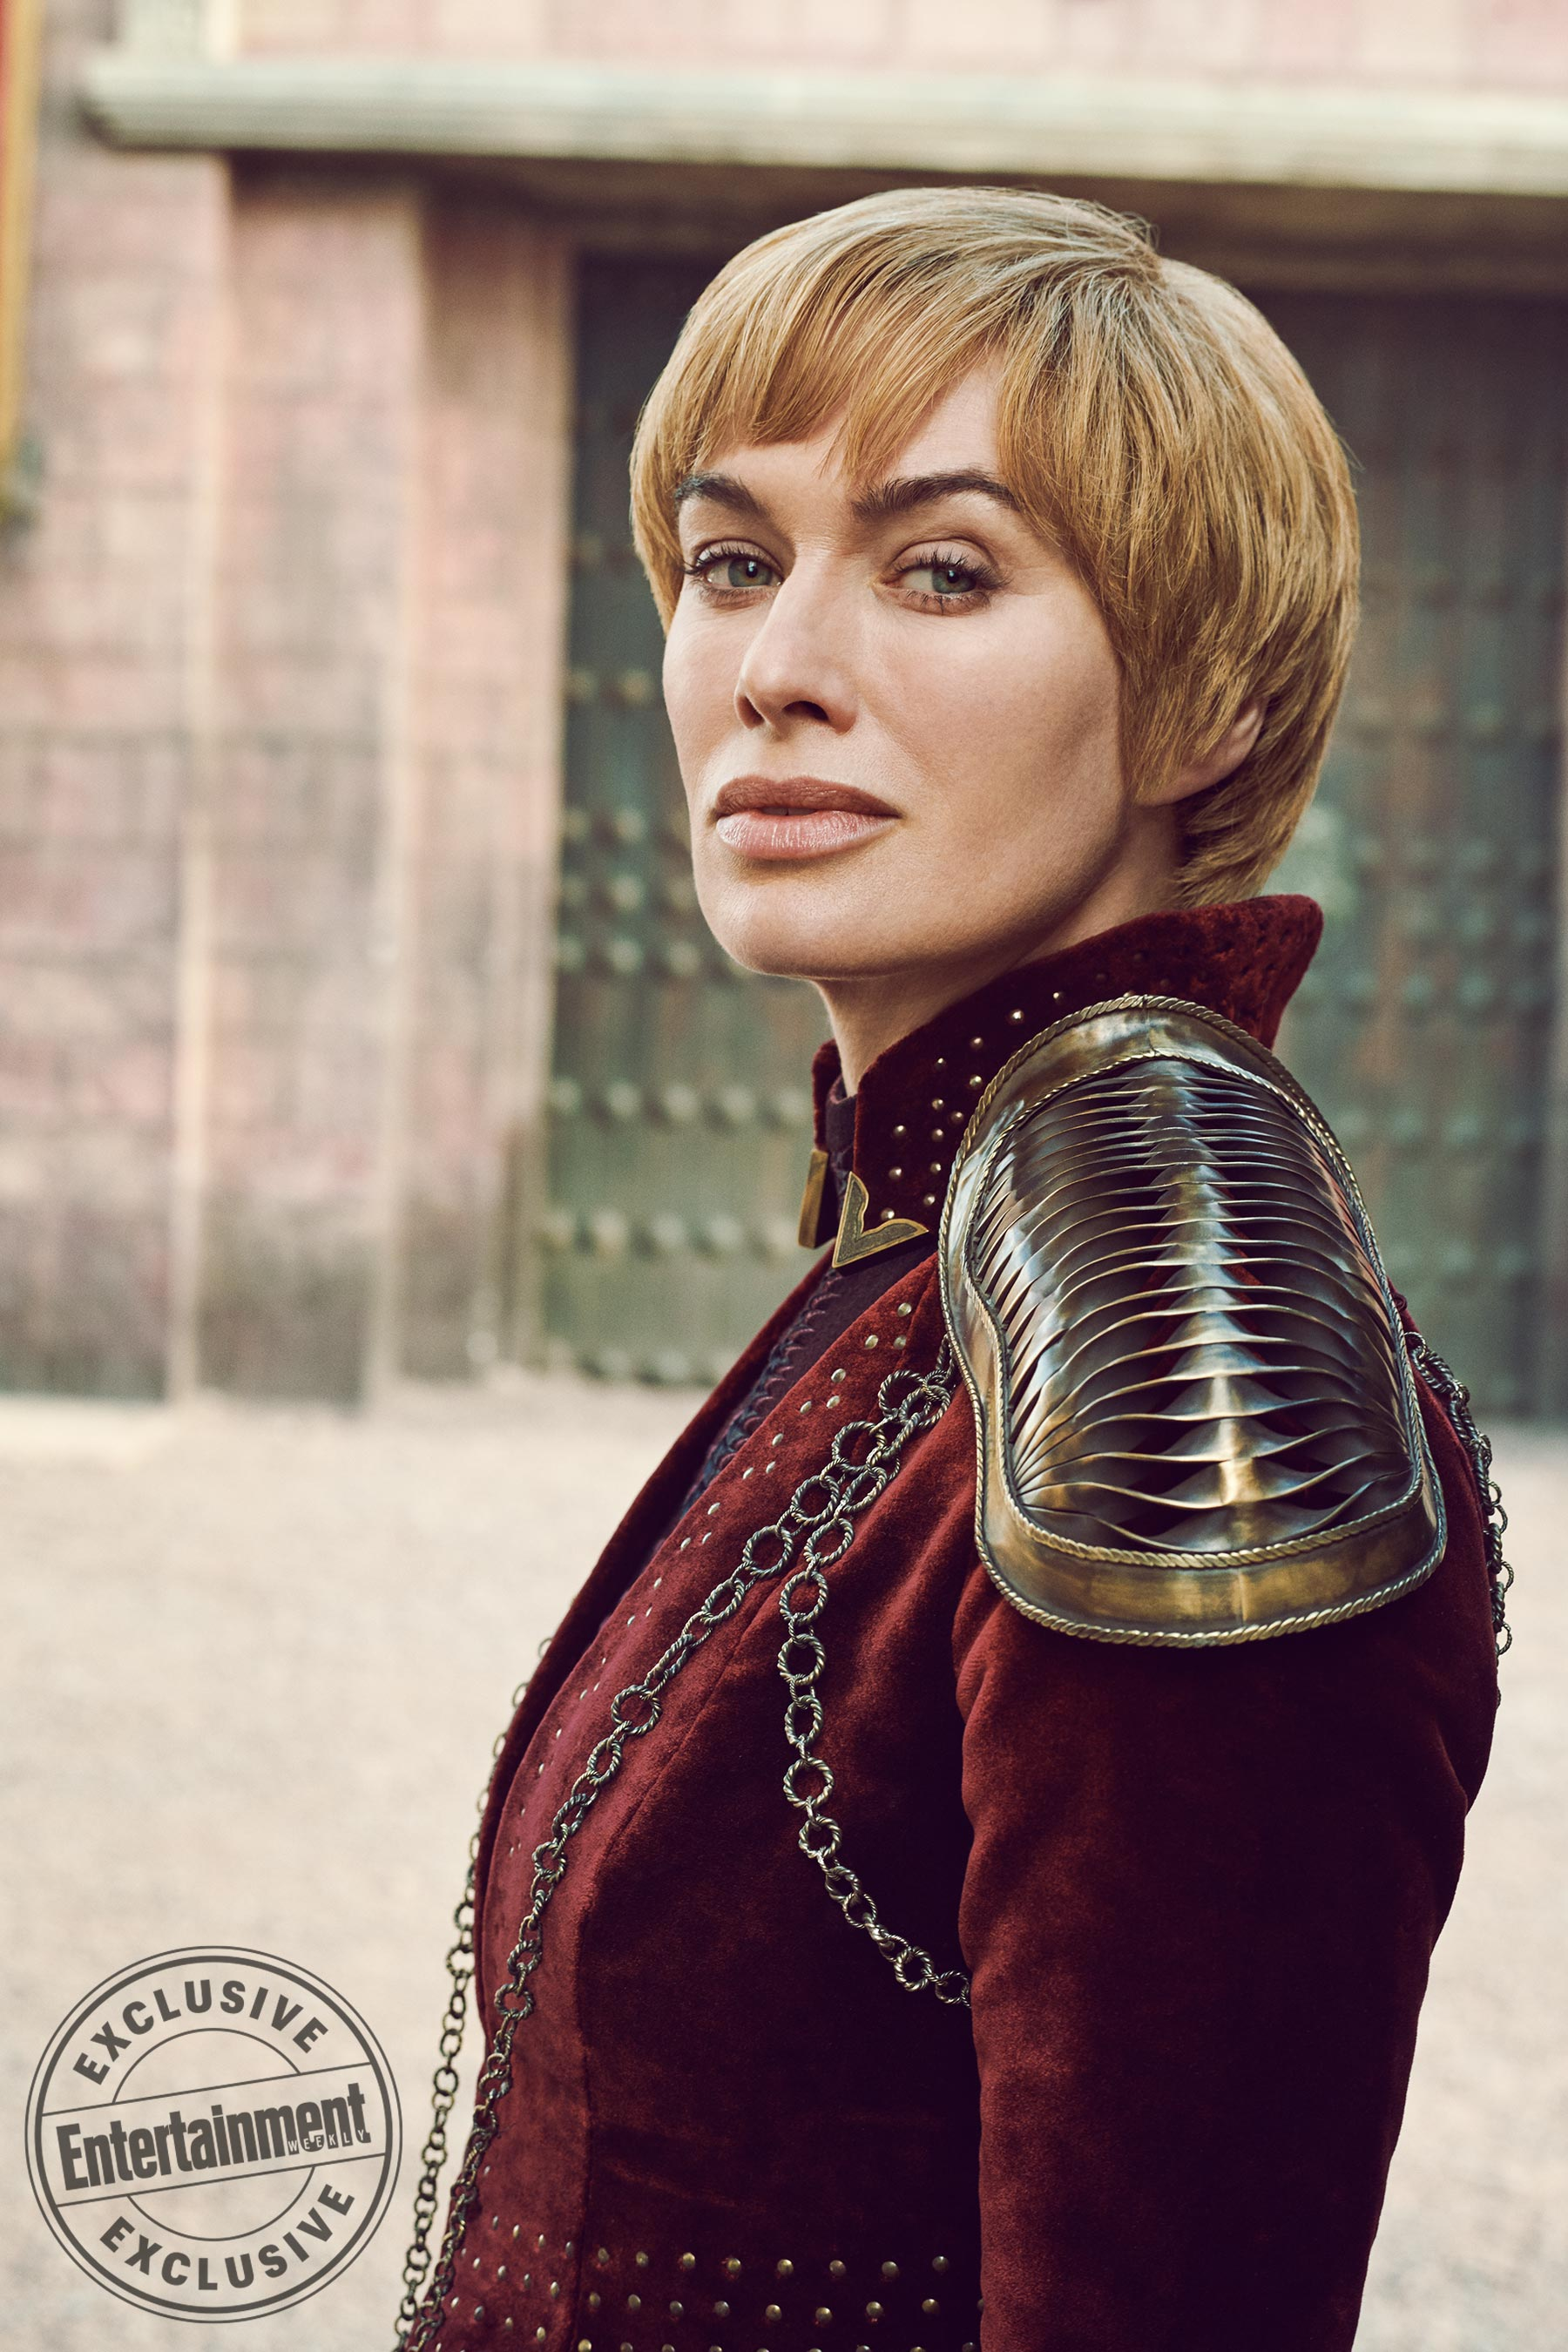 Entertainment Weekly Photoshoot - 2019 - Lena Headey as Cersei Lannister